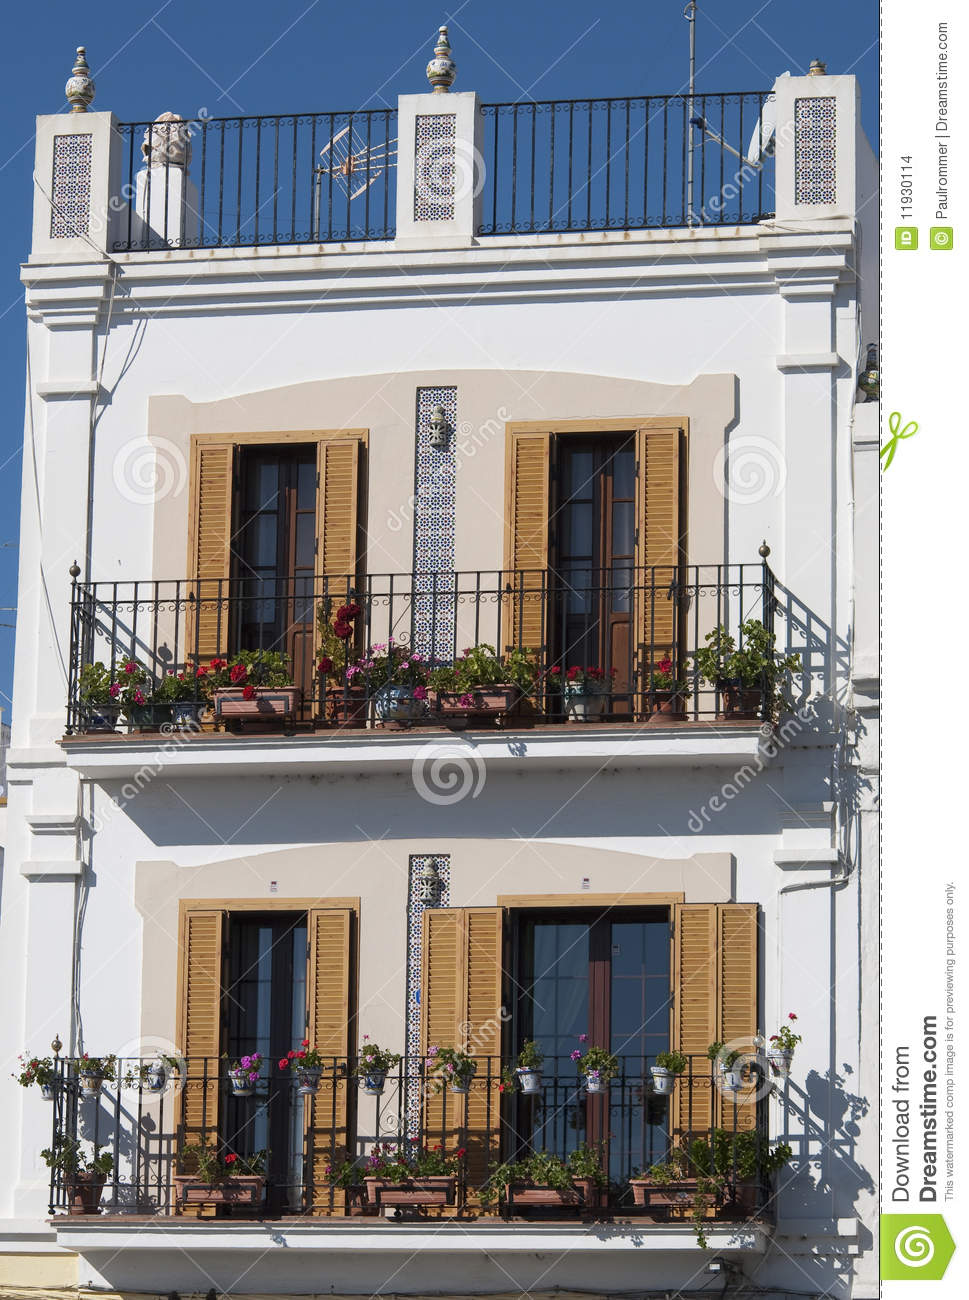 Spanish balcony stock images image 11930114 for Balcony in spanish